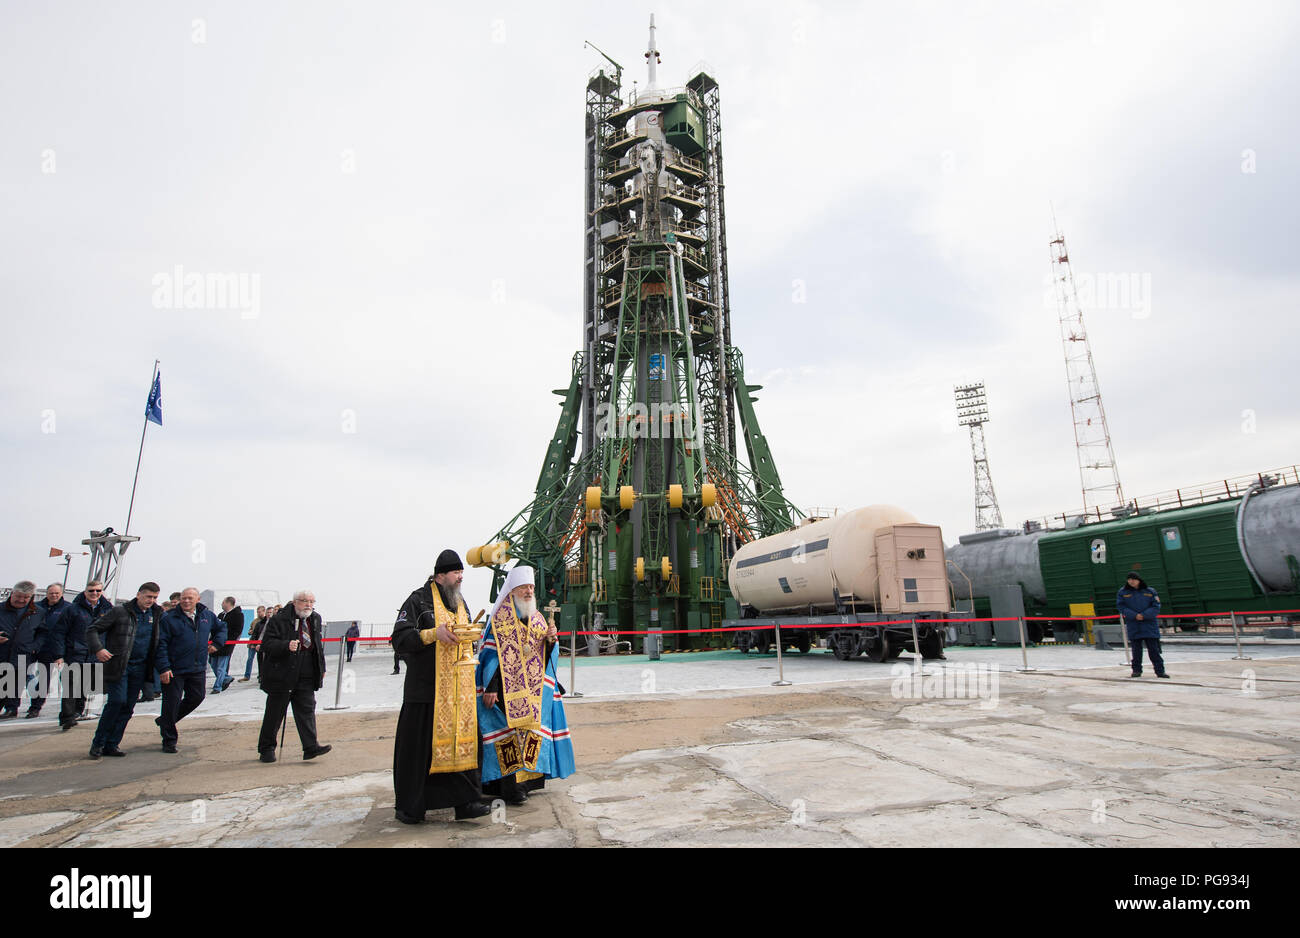 A pair of Orthodox Priests are seen after blessing the Soyuz rocket at the Baikonur Cosmodrome launch pad, Tuesday, March 20, 2018 in Baikonur, Kazakhstan. Expedition 55 Soyuz Commander Oleg Artemyev of Roscosmos, Ricky Arnold and Drew Feustel of NASA are scheduled to launch to the International Space Station aboard the Soyuz MS-08 spacecraft on Wednesday, March, 21. - Stock Image